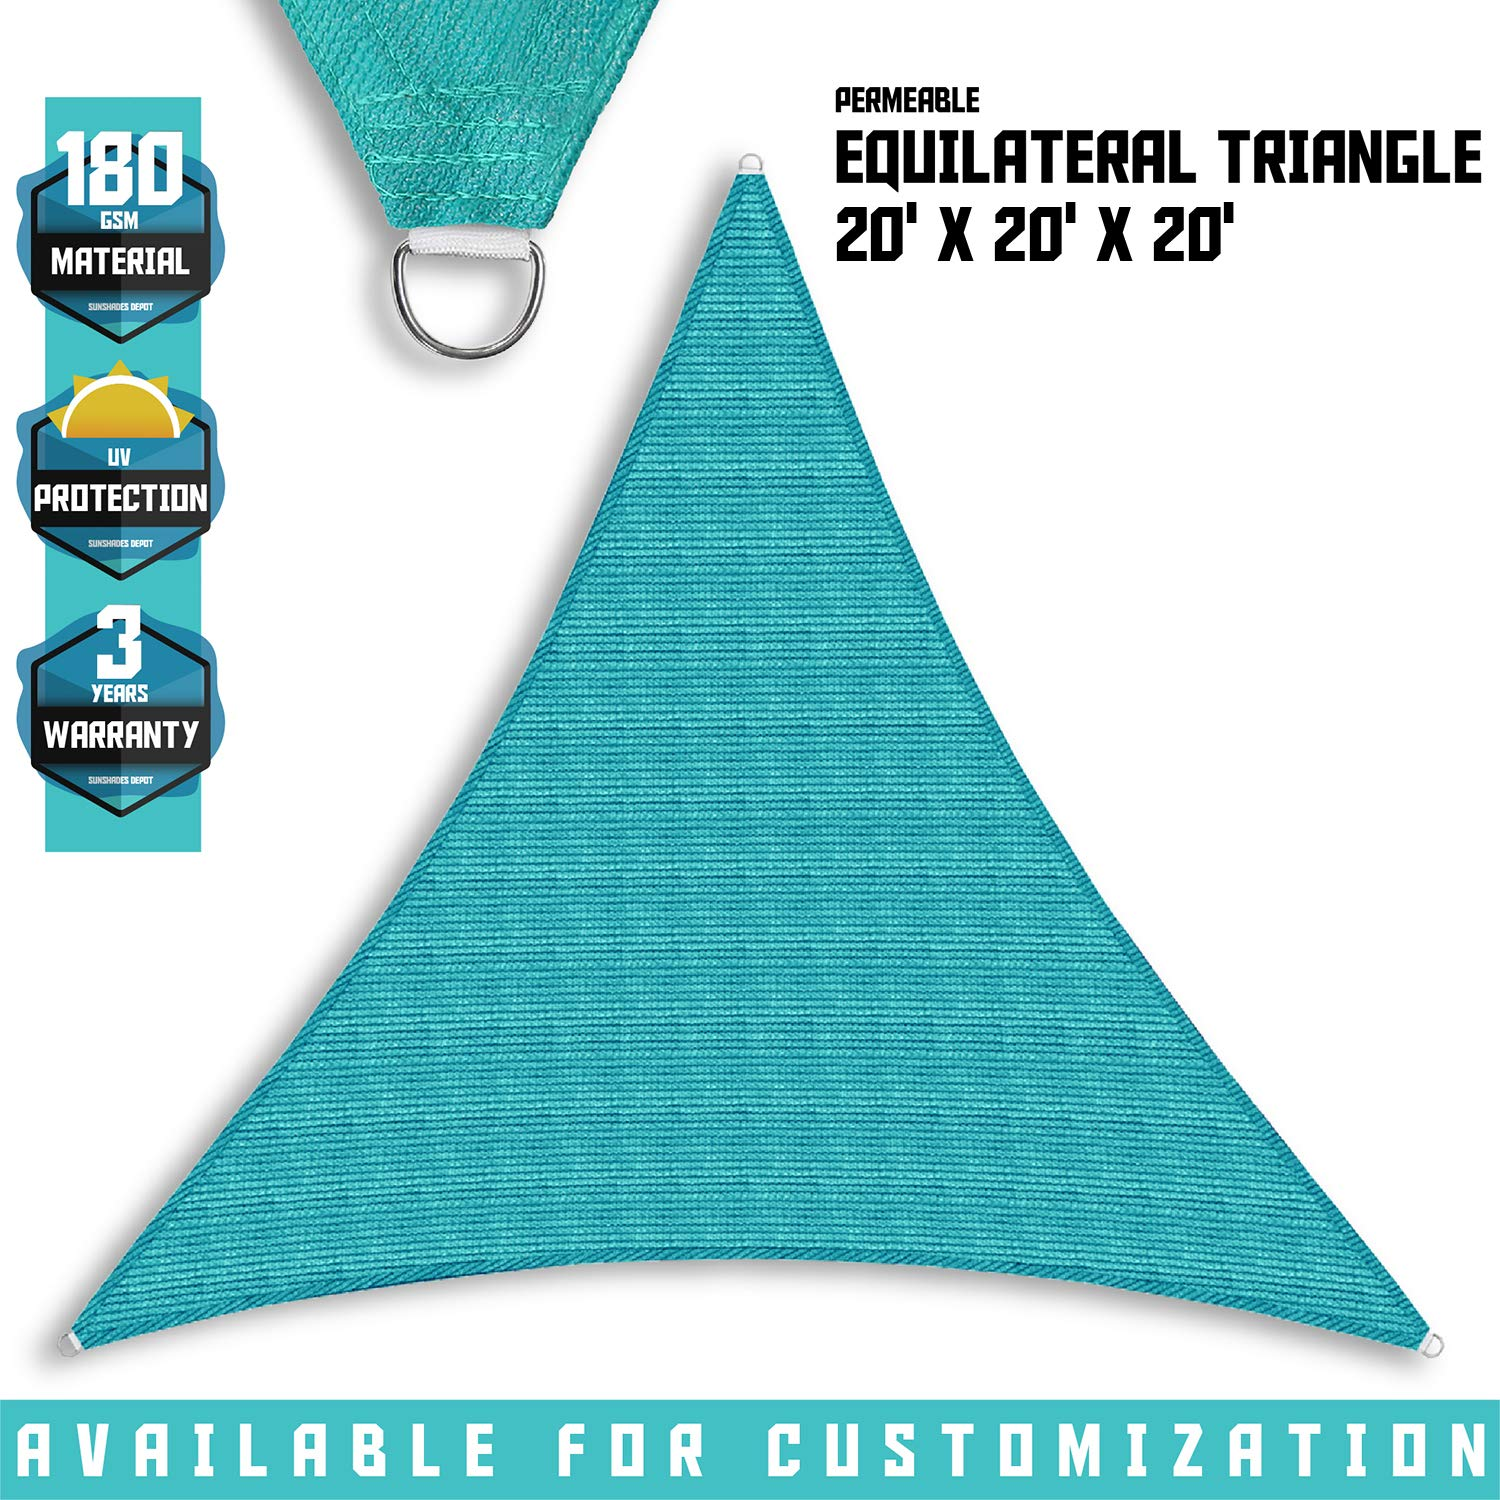 Tang Sunshades Depot 20'20'20' Turquoise Green Sun Shade Sail 180 GSM Equilateral Triangle Permeable Canopy Custom Commercial Standard by Tang